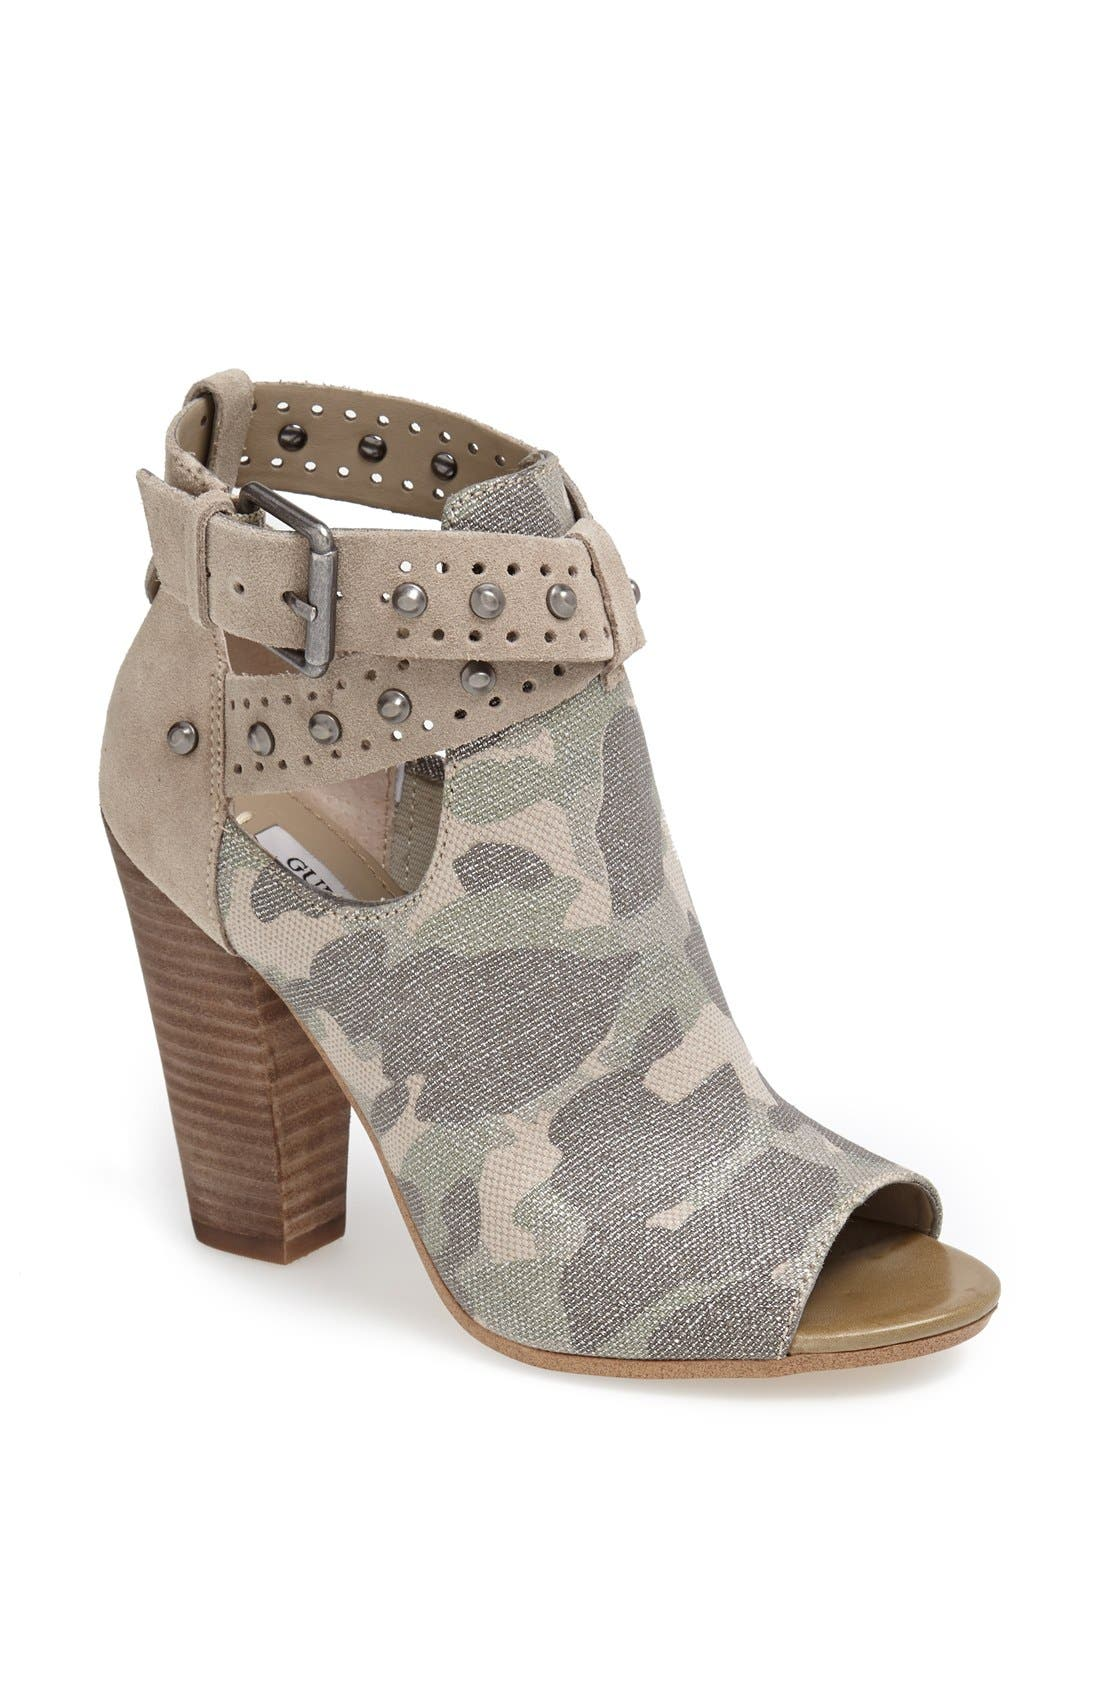 Alternate Image 1 Selected - GUESS 'Bagent' Cutout Camo Bootie